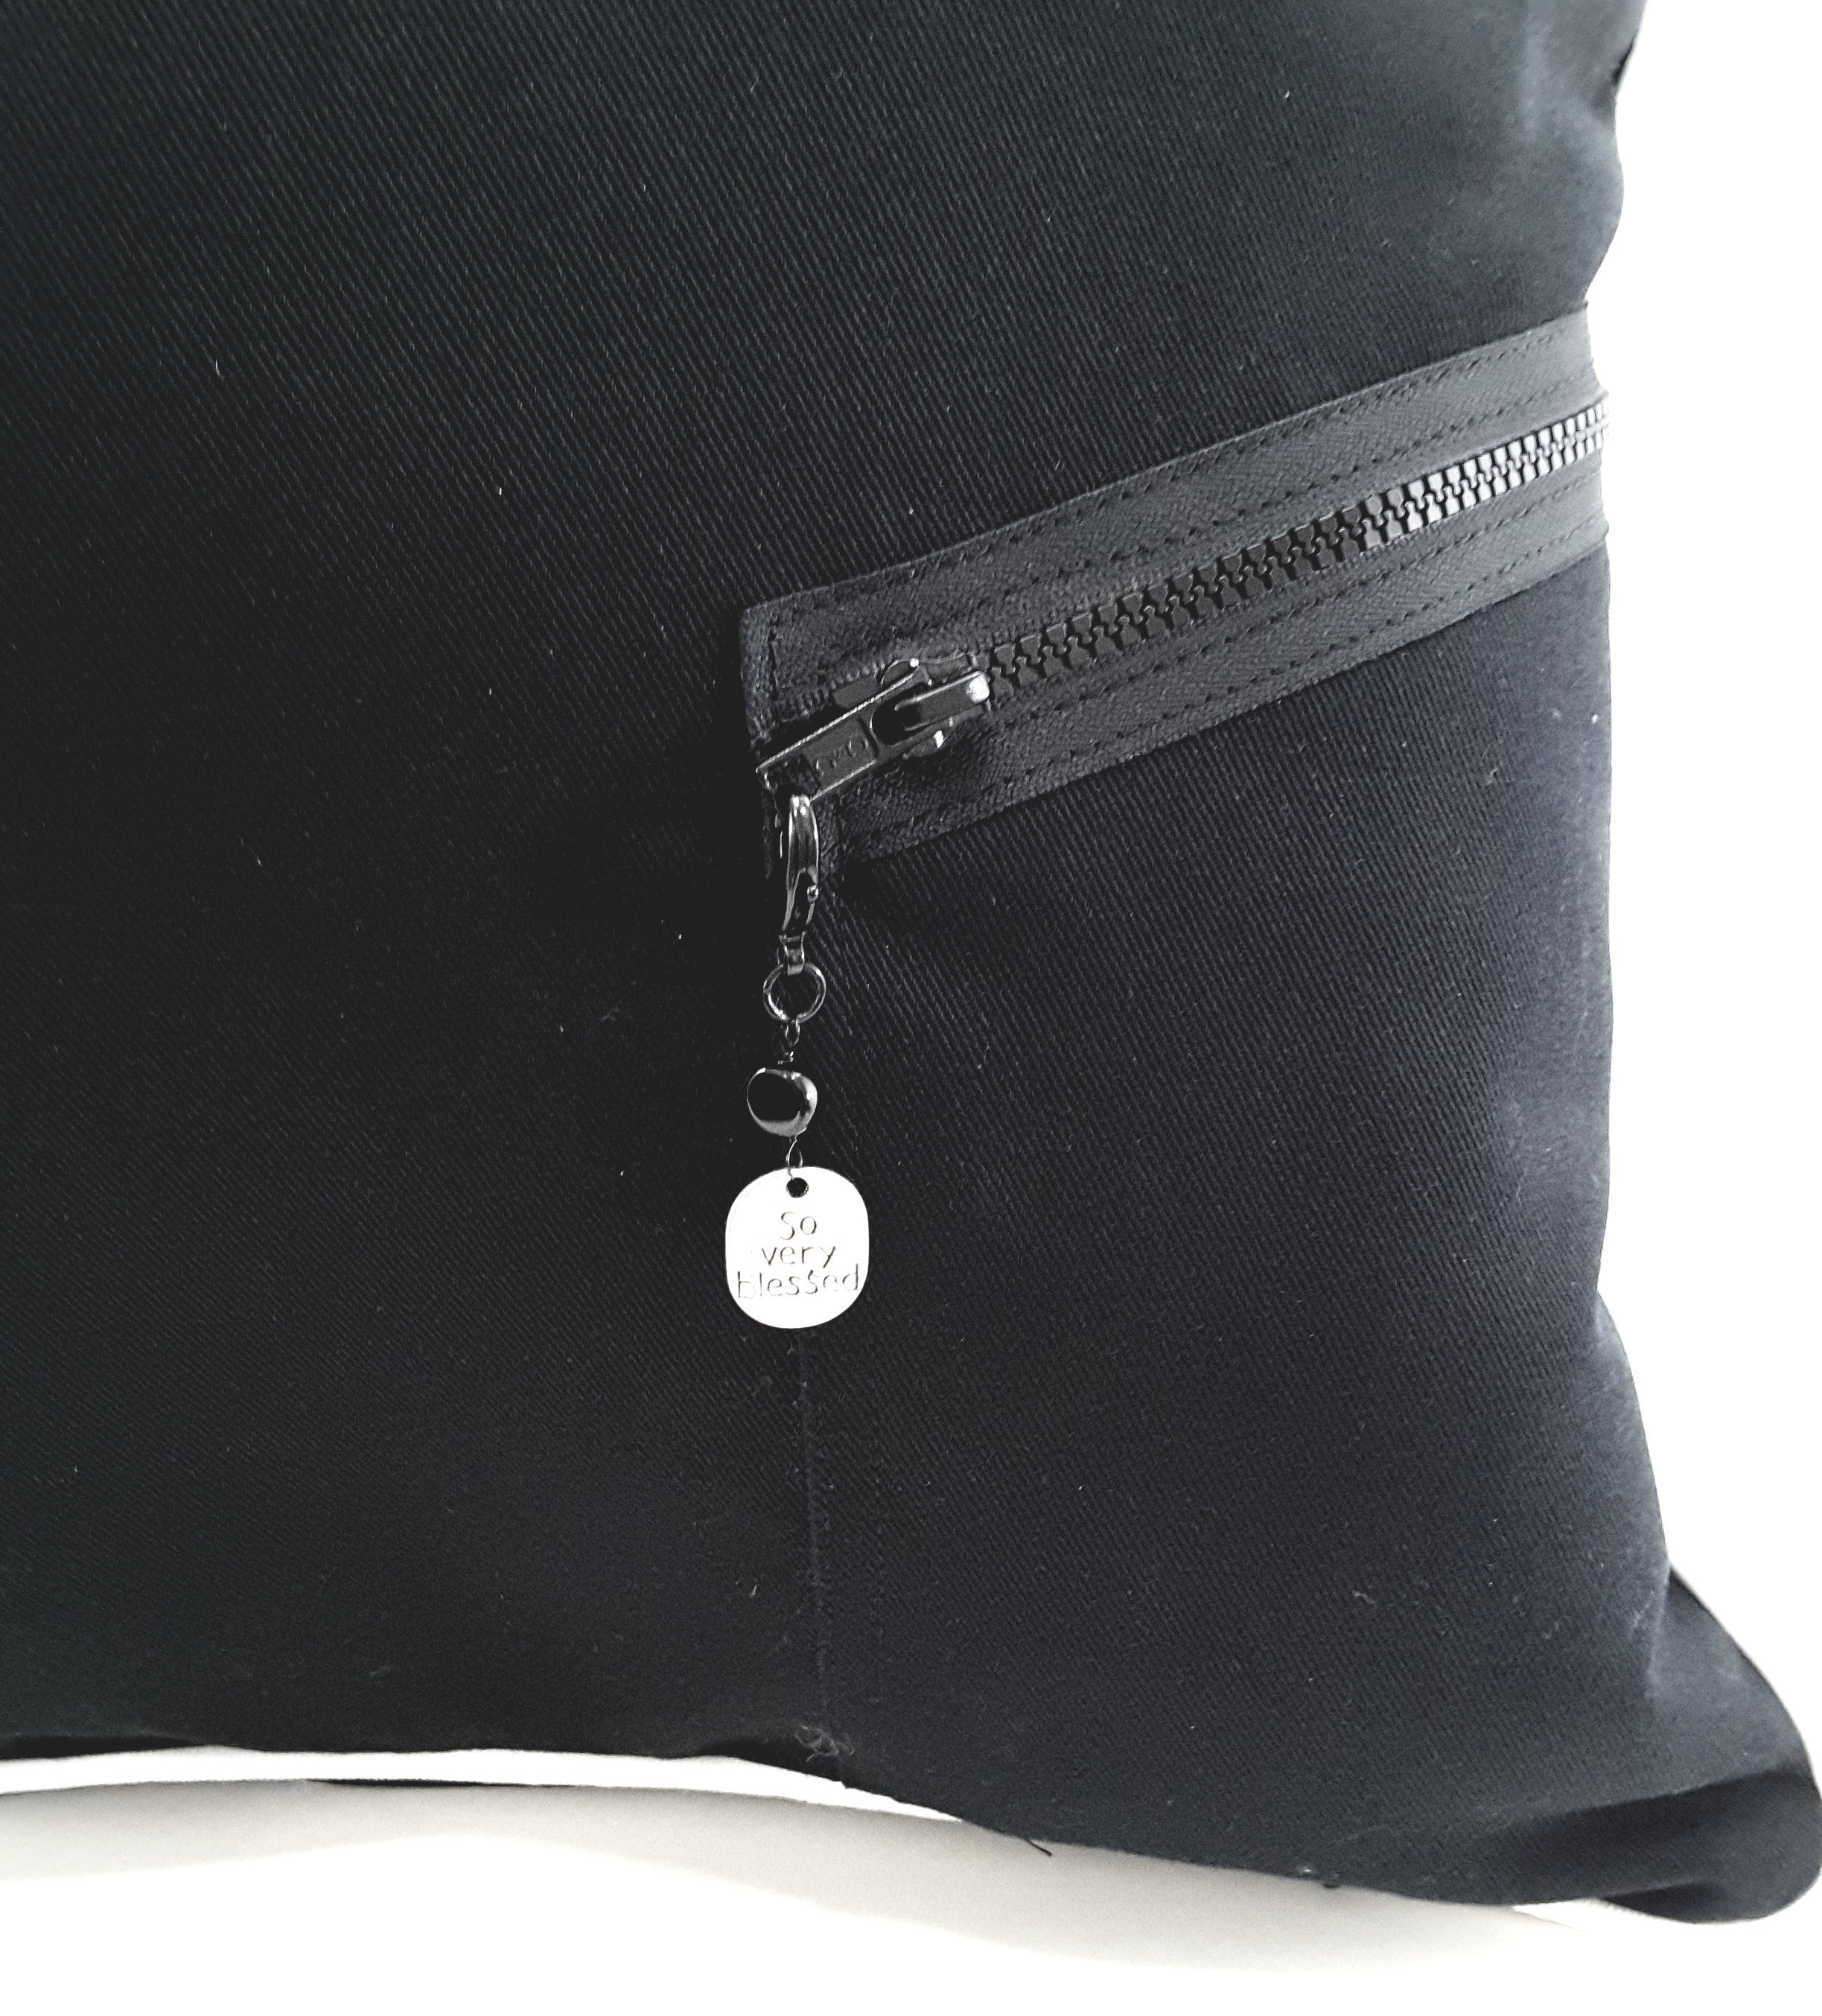 Black Denim Pillow Cover with Zippered Pocket & So Very Blessed Charm - TheLastWordBish.com